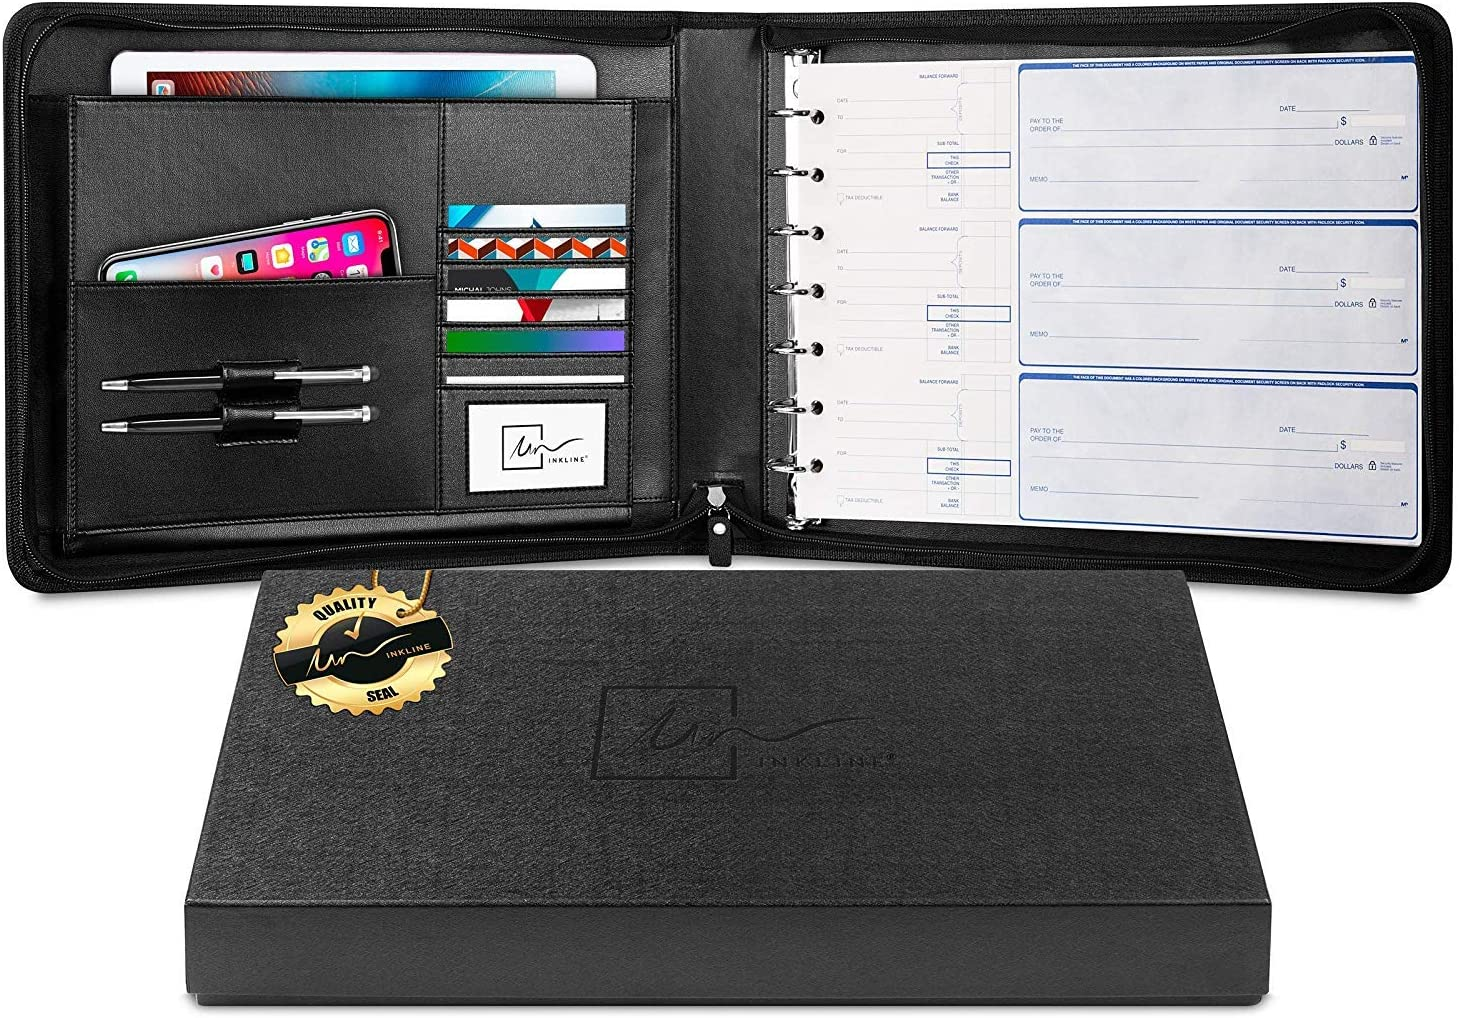 Inkline 7 Ring Check Binder Portfolio -Professional PU Leather Binder with Zippered Closure -500 Check Capacity -9x13 Inch Sheets -Document Organizer & Business Card Holder -Large Tablet Pocket -80001